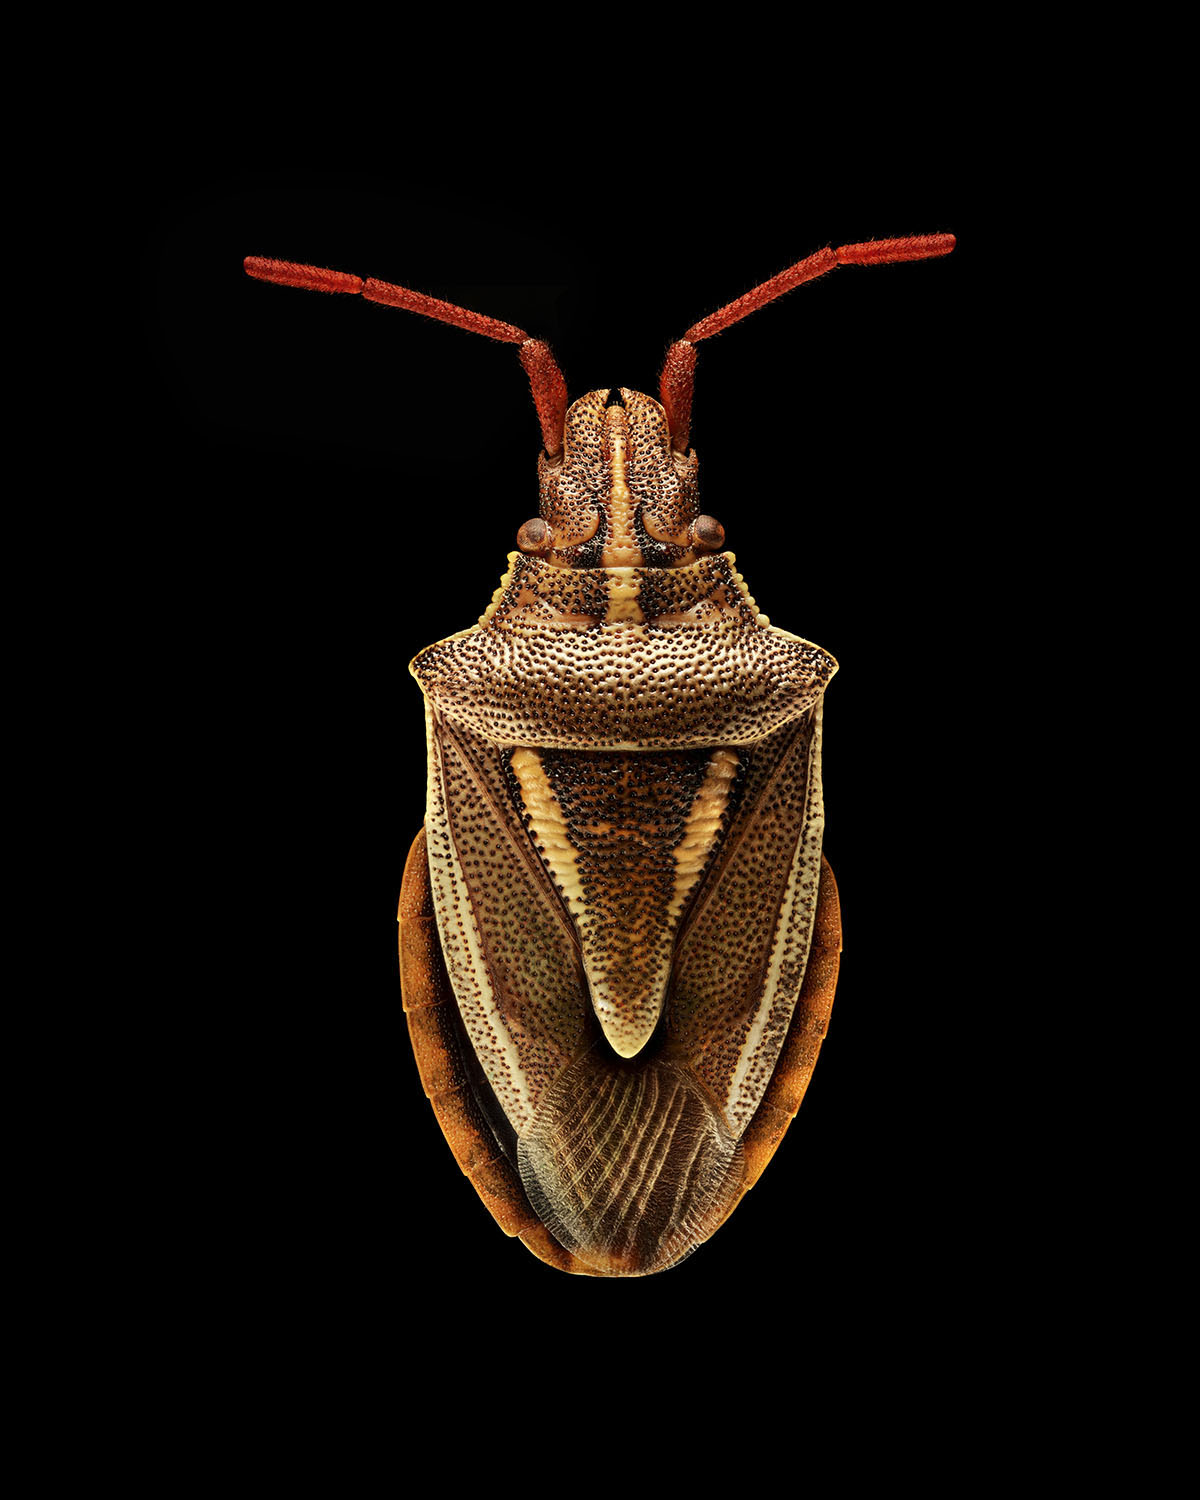 Shield Bug, collected by Charles Darwin